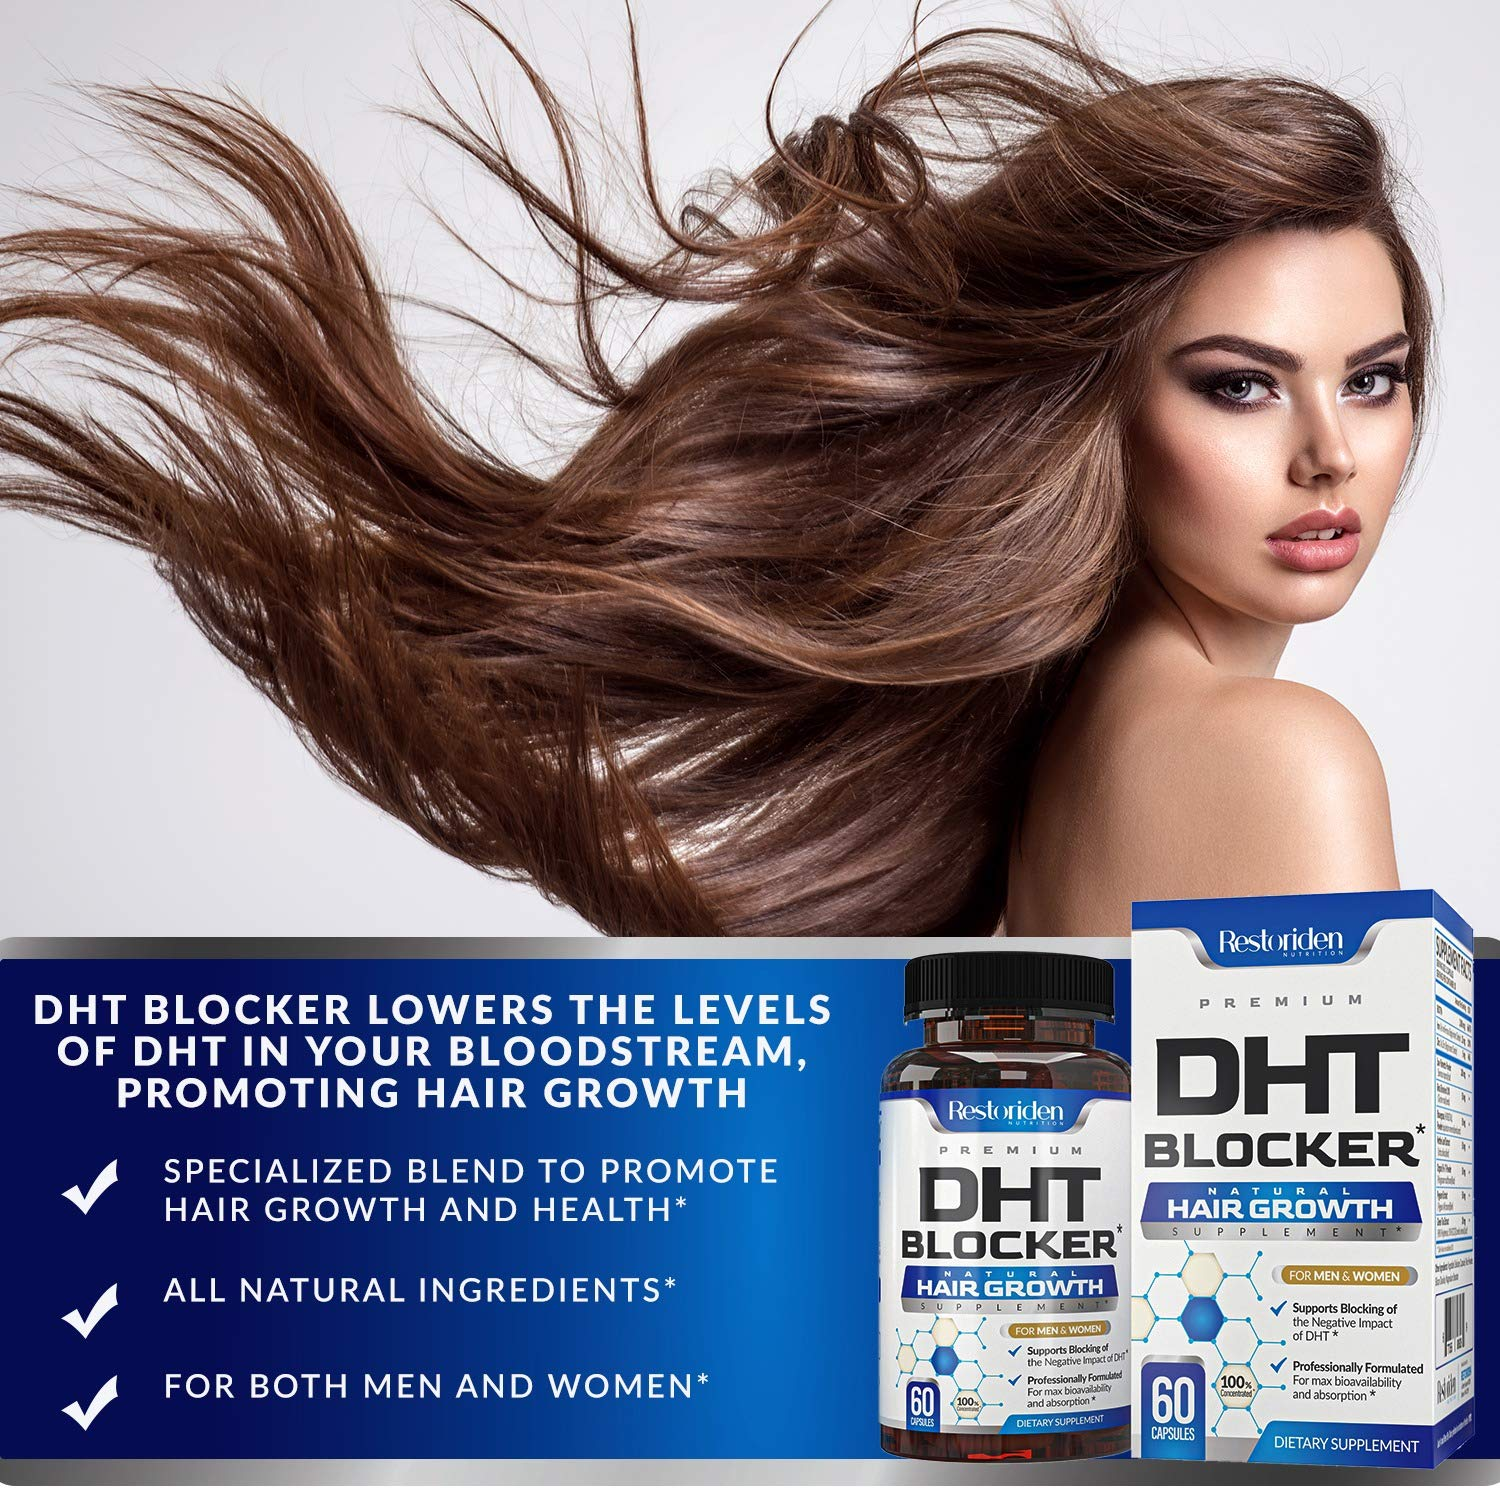 Restoriden DHT Blocker Hair Loss Supplement - Supports Healthy Hair Growth - Helps Stimulate New Hair Follicle Growth - With High Potency Biotin and Saw Palmetto - For Men And Women - One Month Supply : Beauty